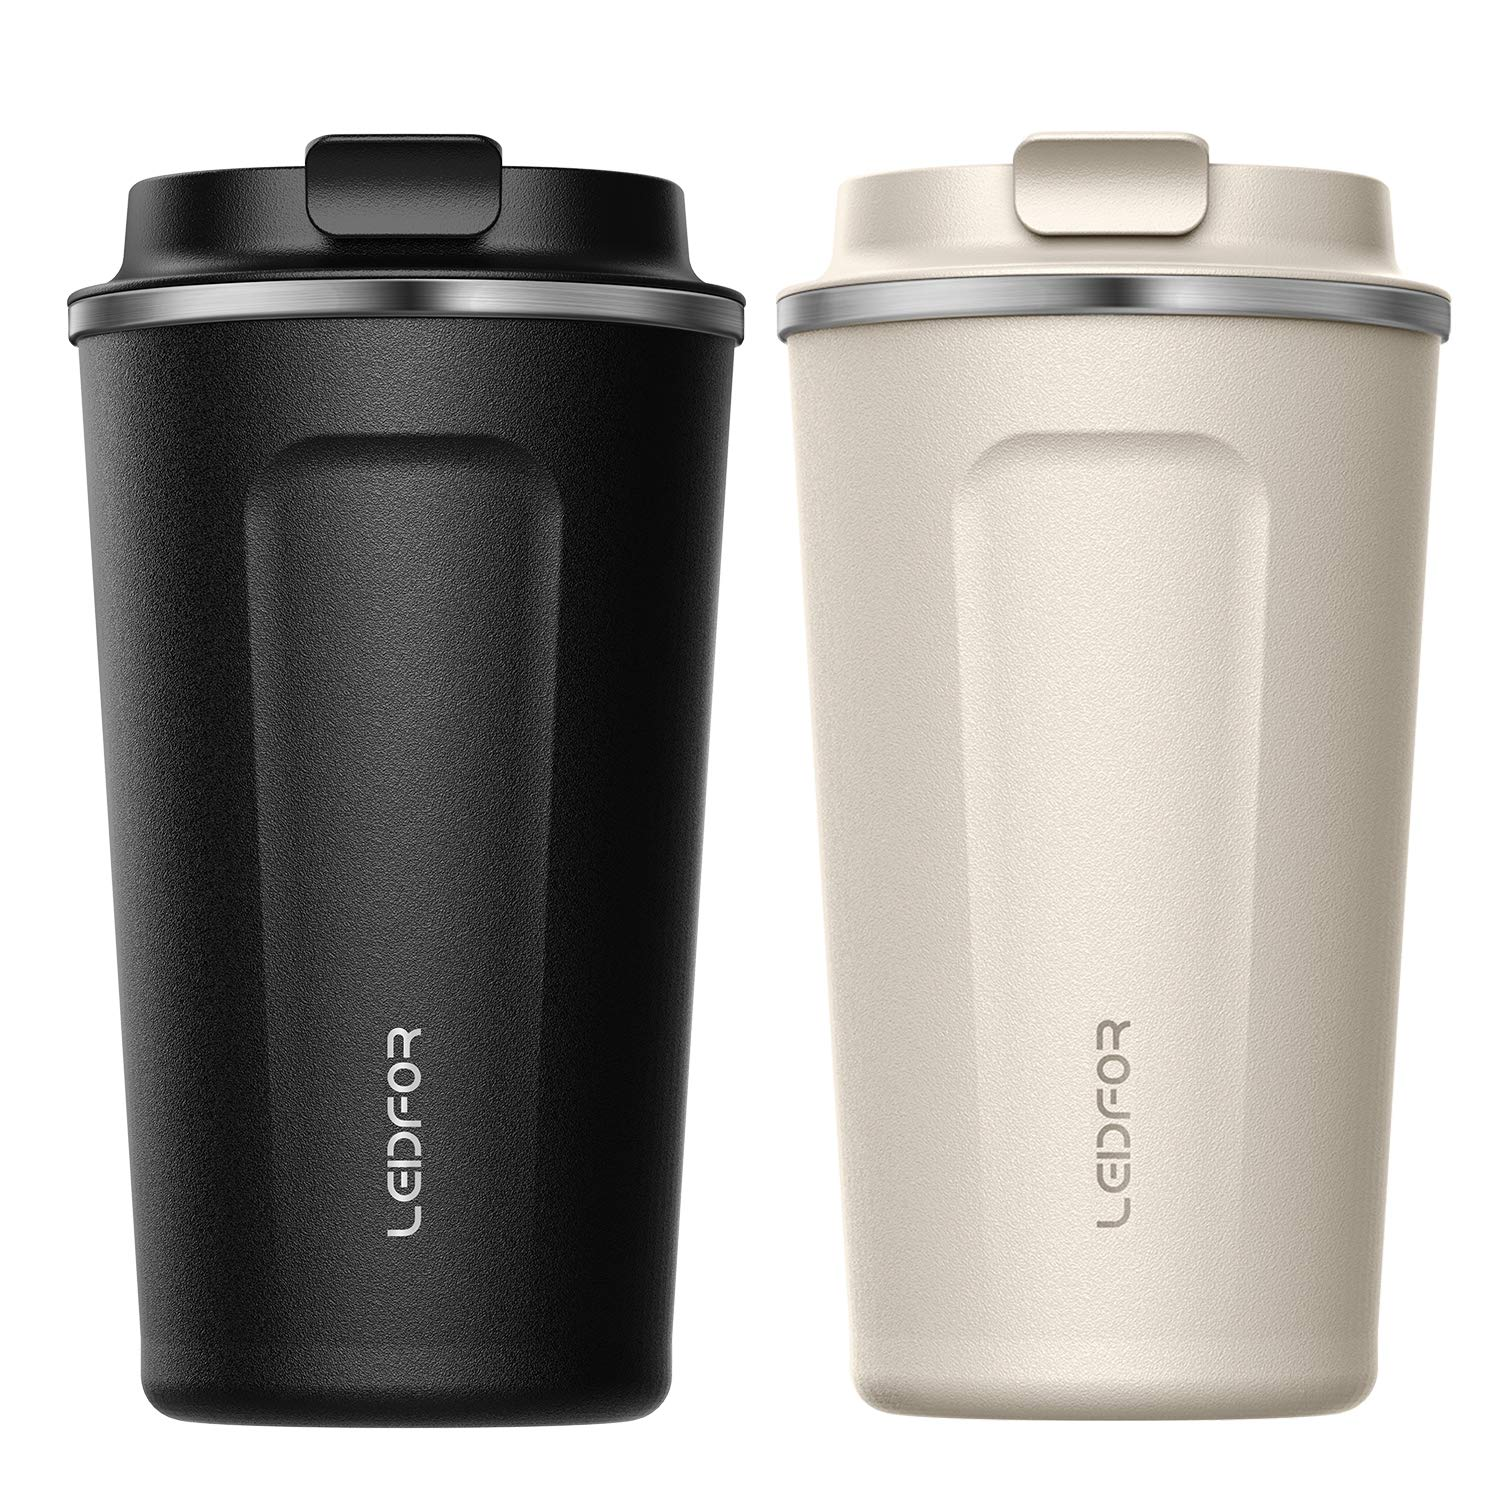 b8638453be2 Amazon.com: Leidfor Insulated Tumbler Coffee Travel Mug Vacuum Insulation  Stainless Steel with Lid Leakproof 17oz Black White TWO PACKT: Kitchen &  Dining